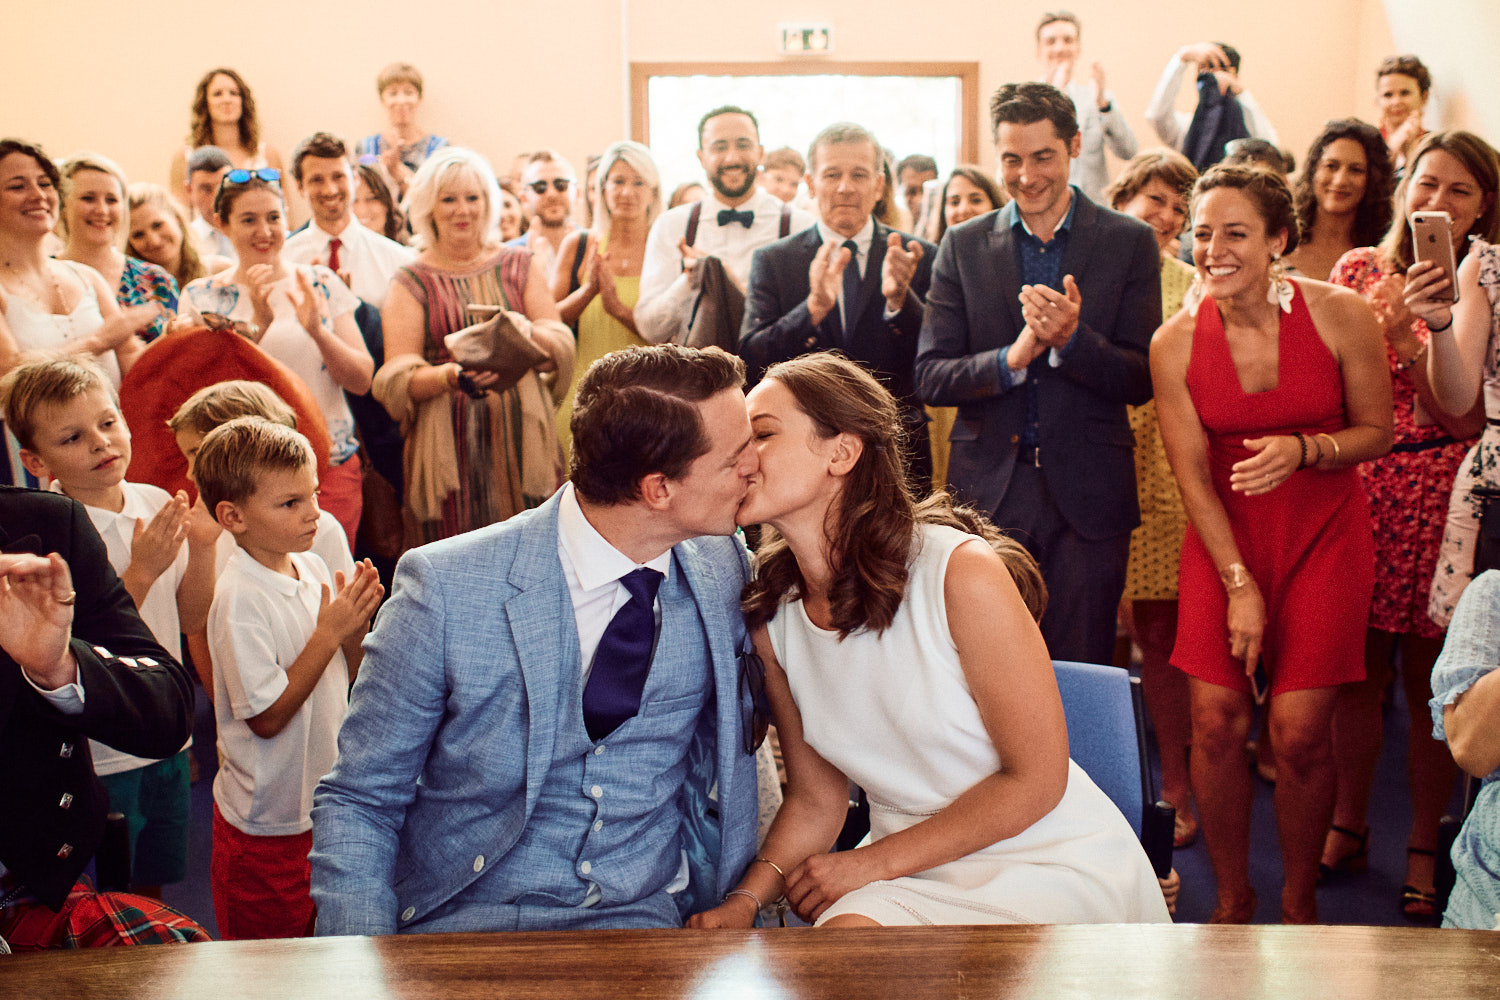 Bride and groom share a kiss as their civil ceremony concludes in French town hall